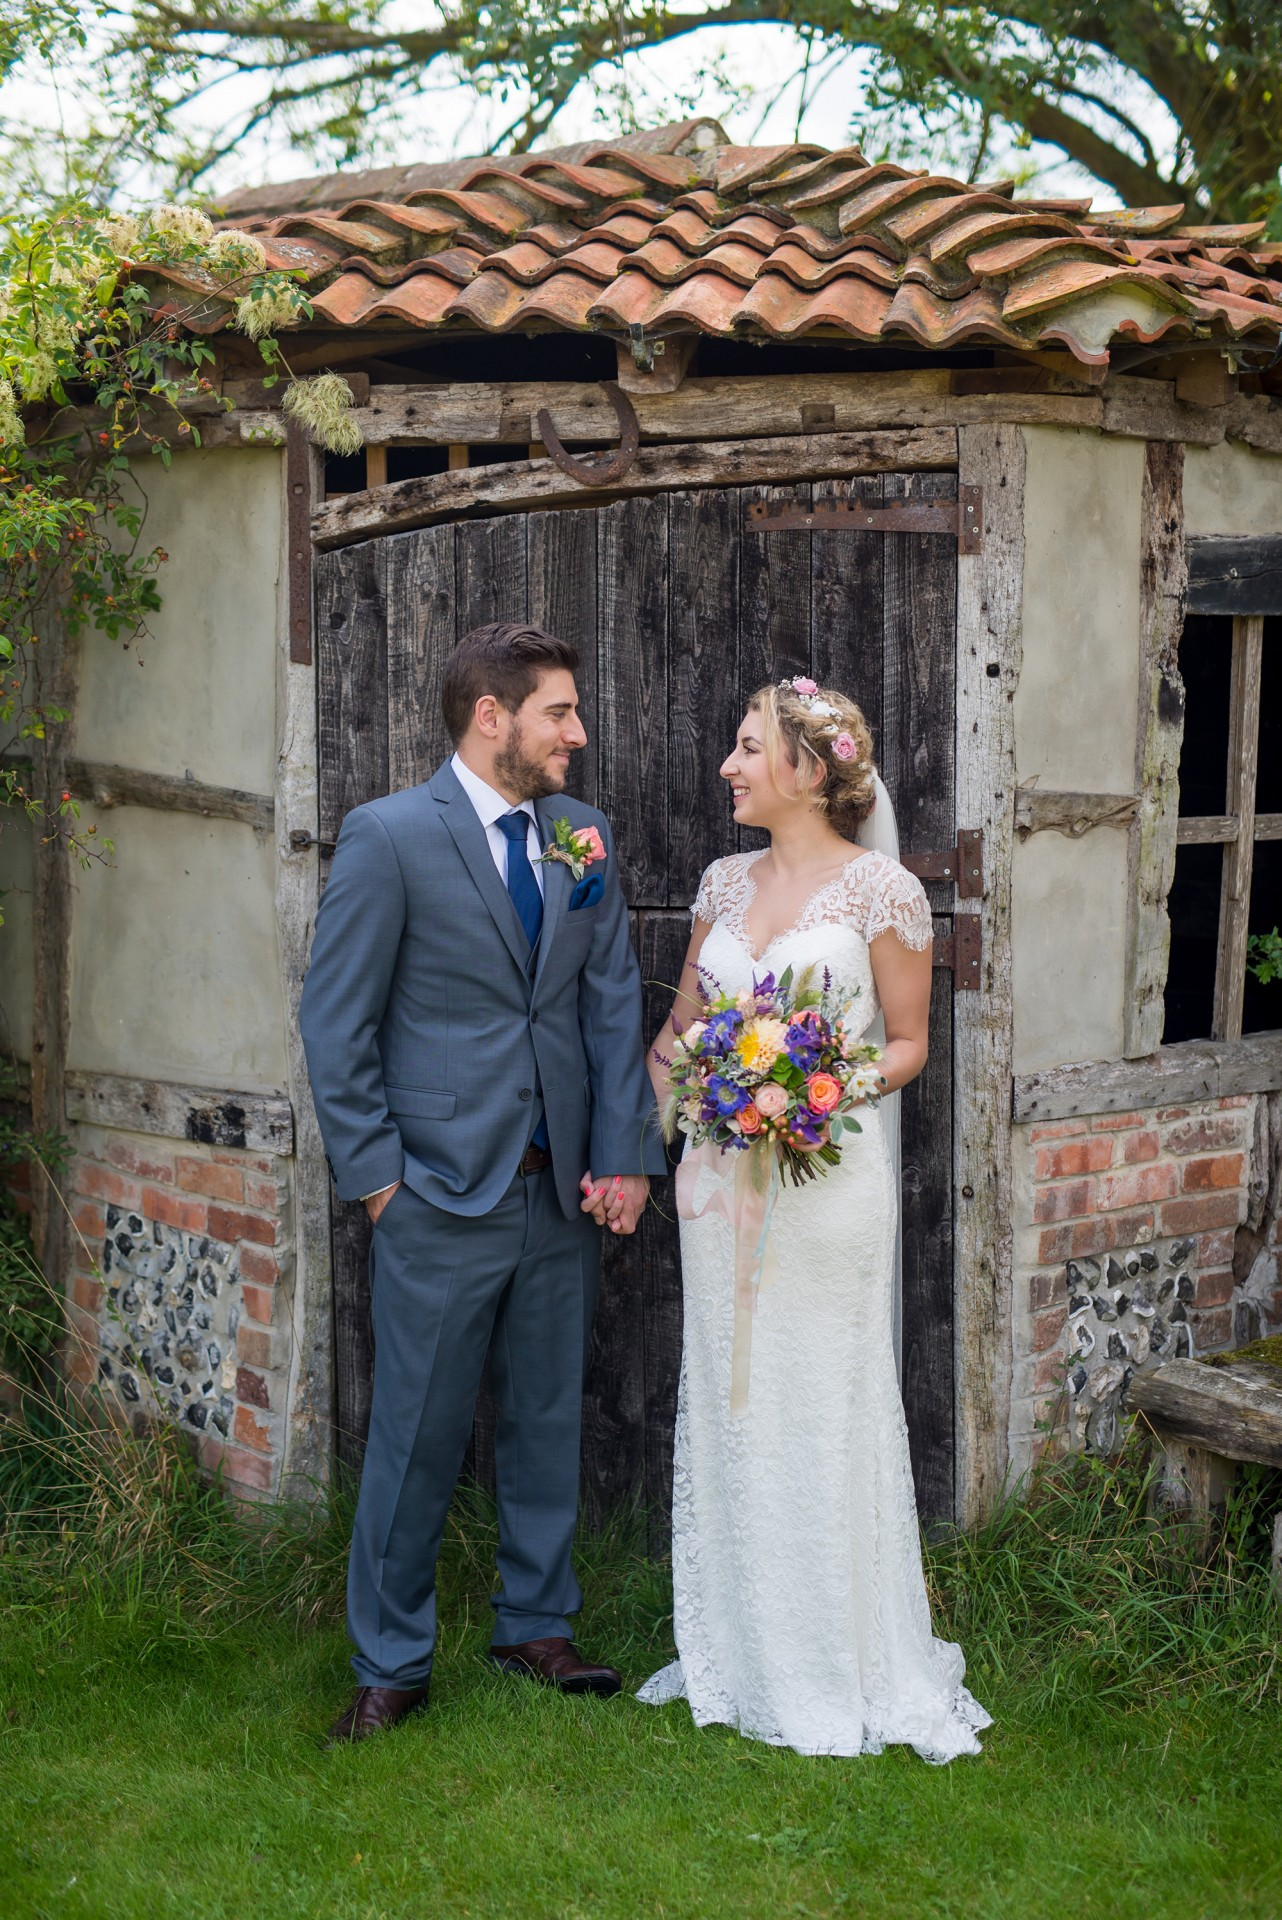 Alice_Joe_Rustic-Wedding_033